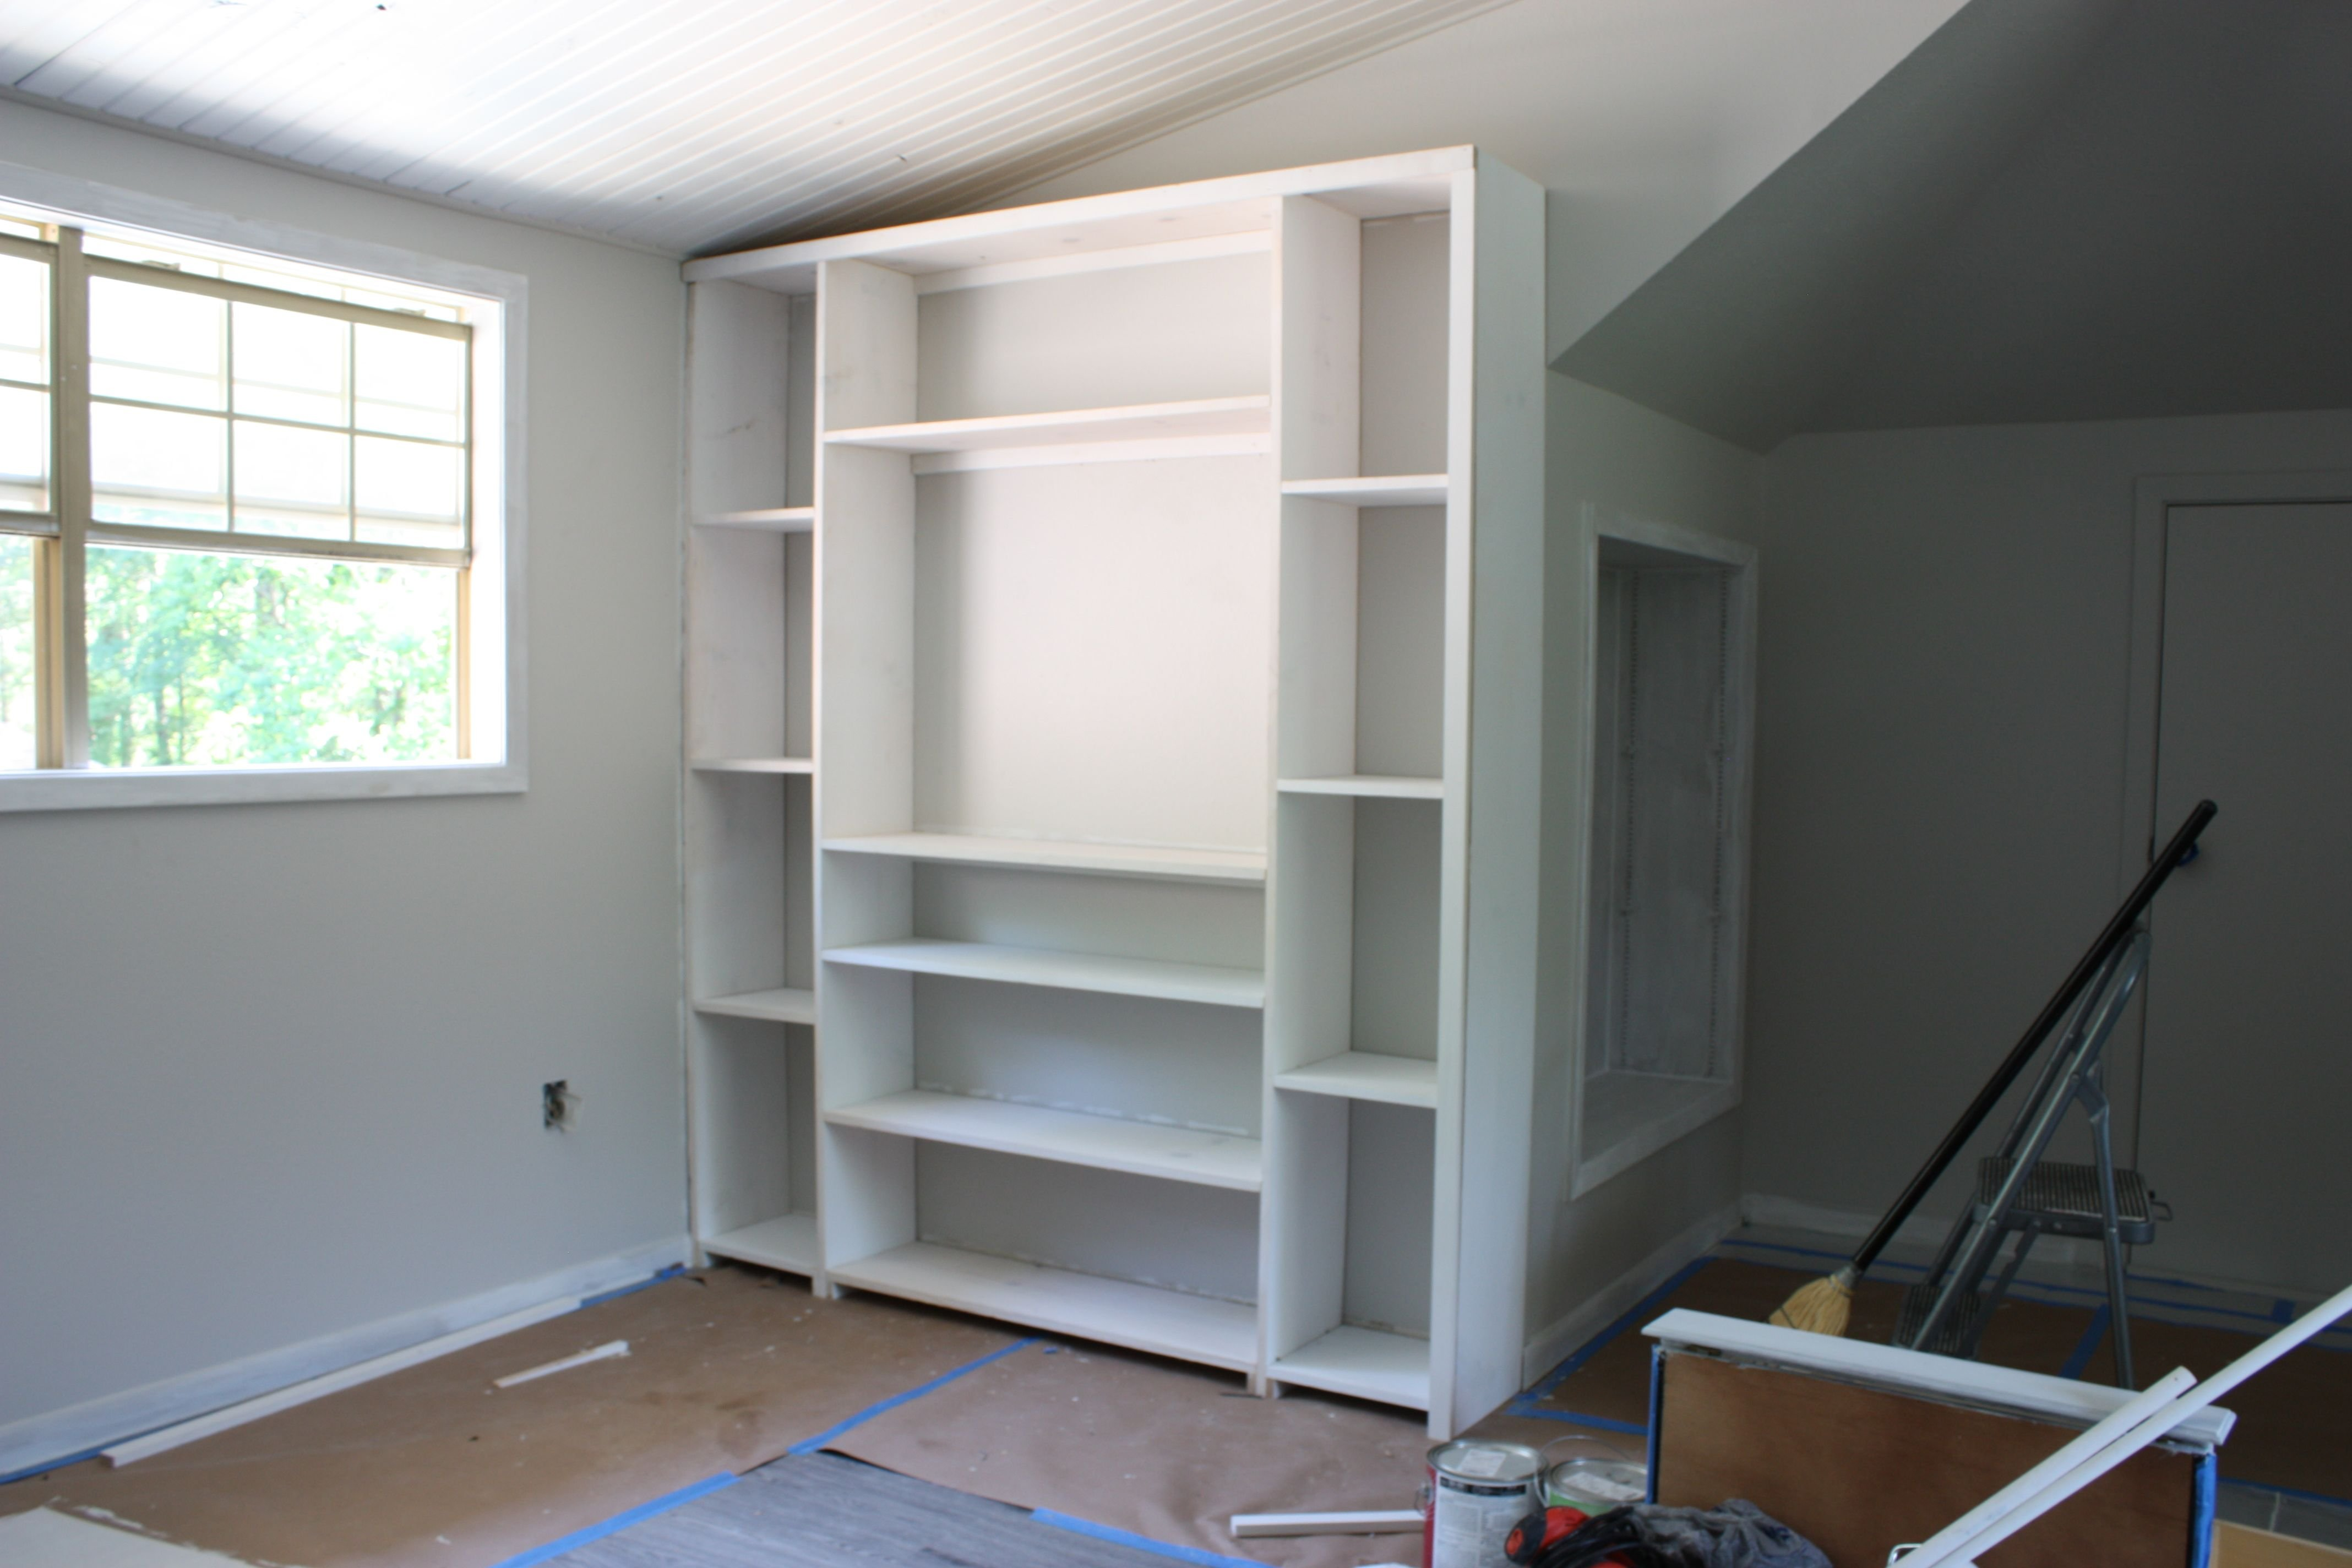 Create Built In Shelving and Cabinets on a Tight Bud